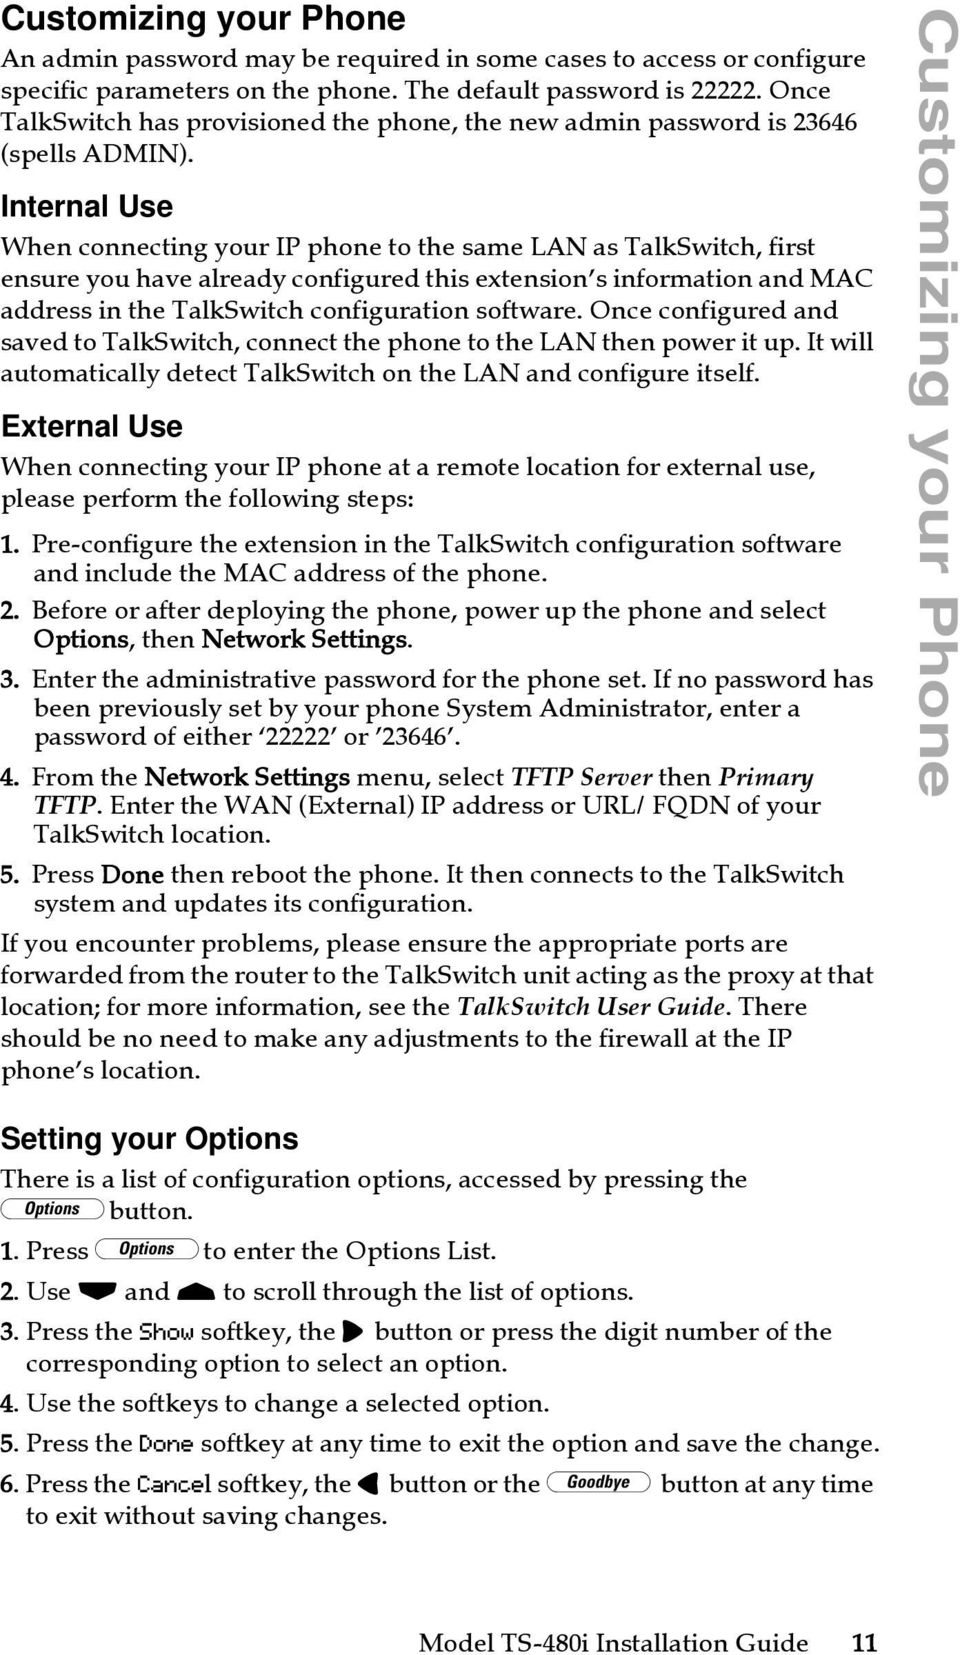 Internal Use When connecting your IP phone to the same LAN as TalkSwitch, first ensure you have already configured this extension s information and MAC address in the TalkSwitch configuration